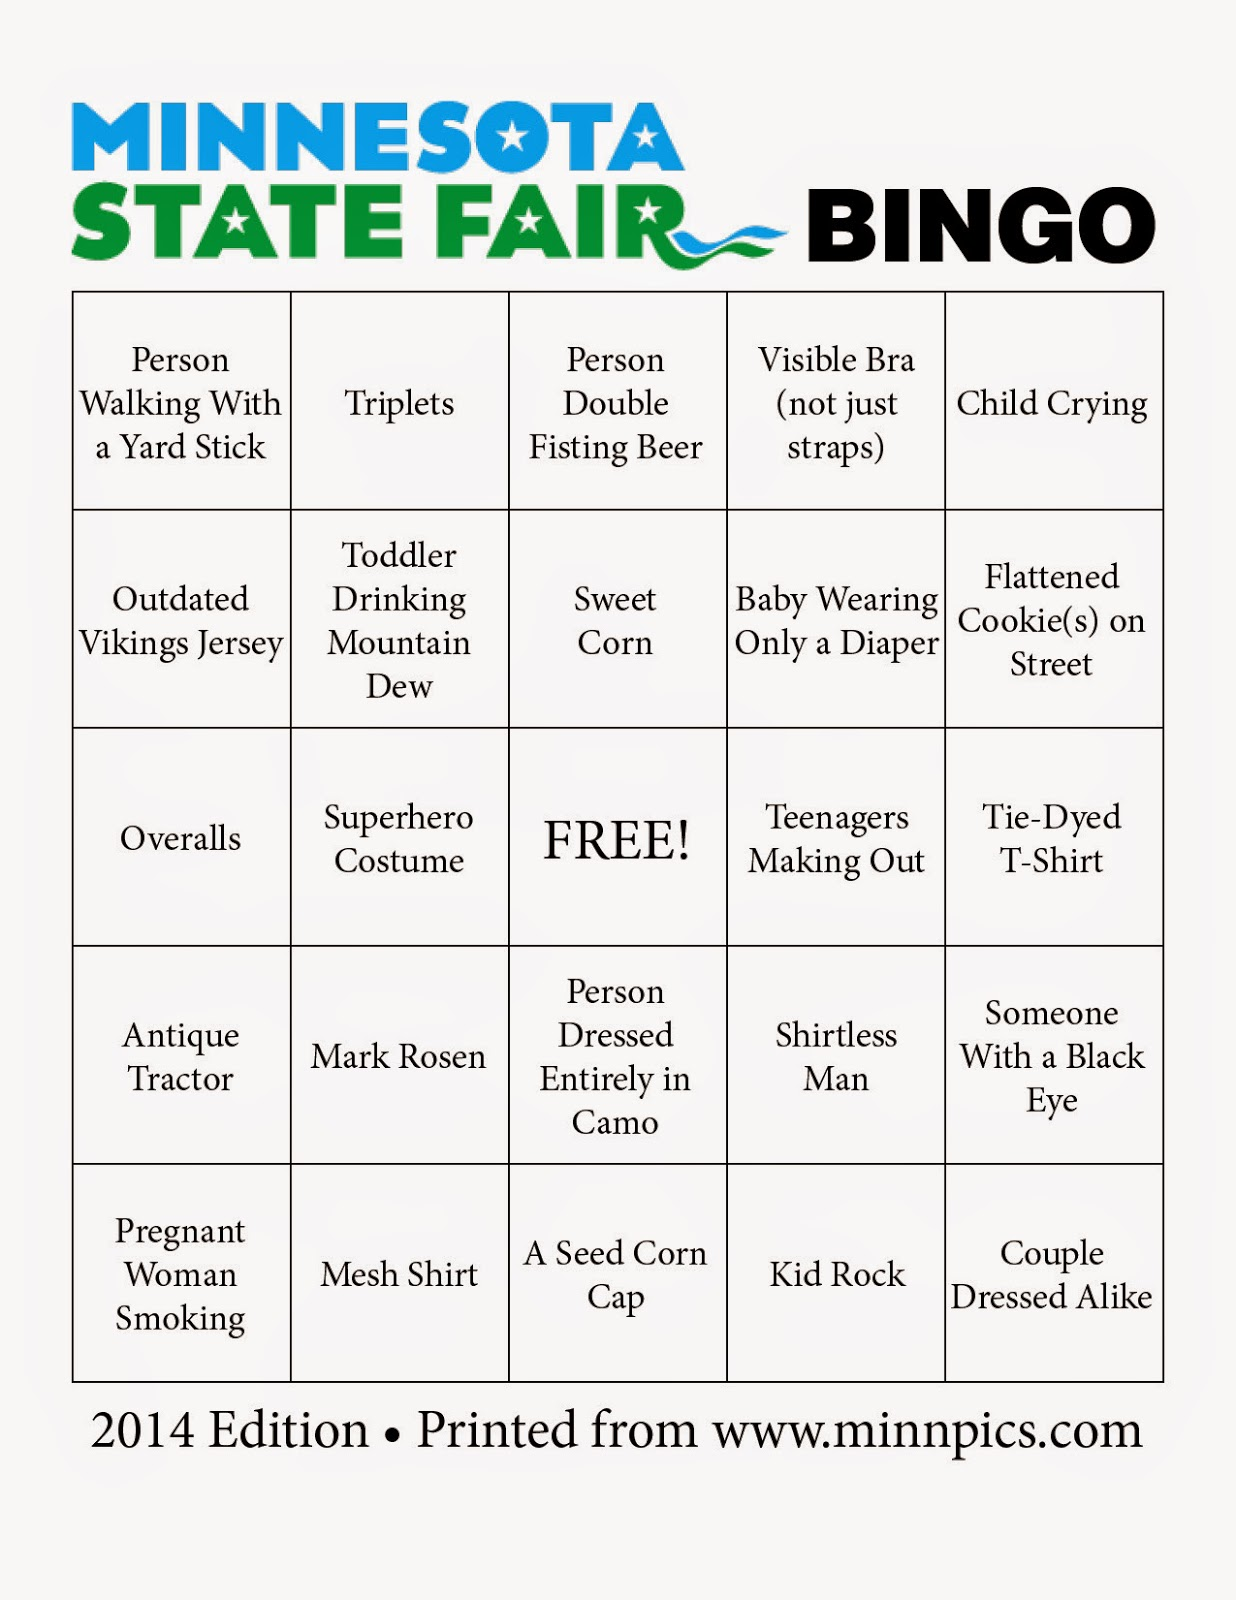 2014 Minnesota State Fair Bingo card